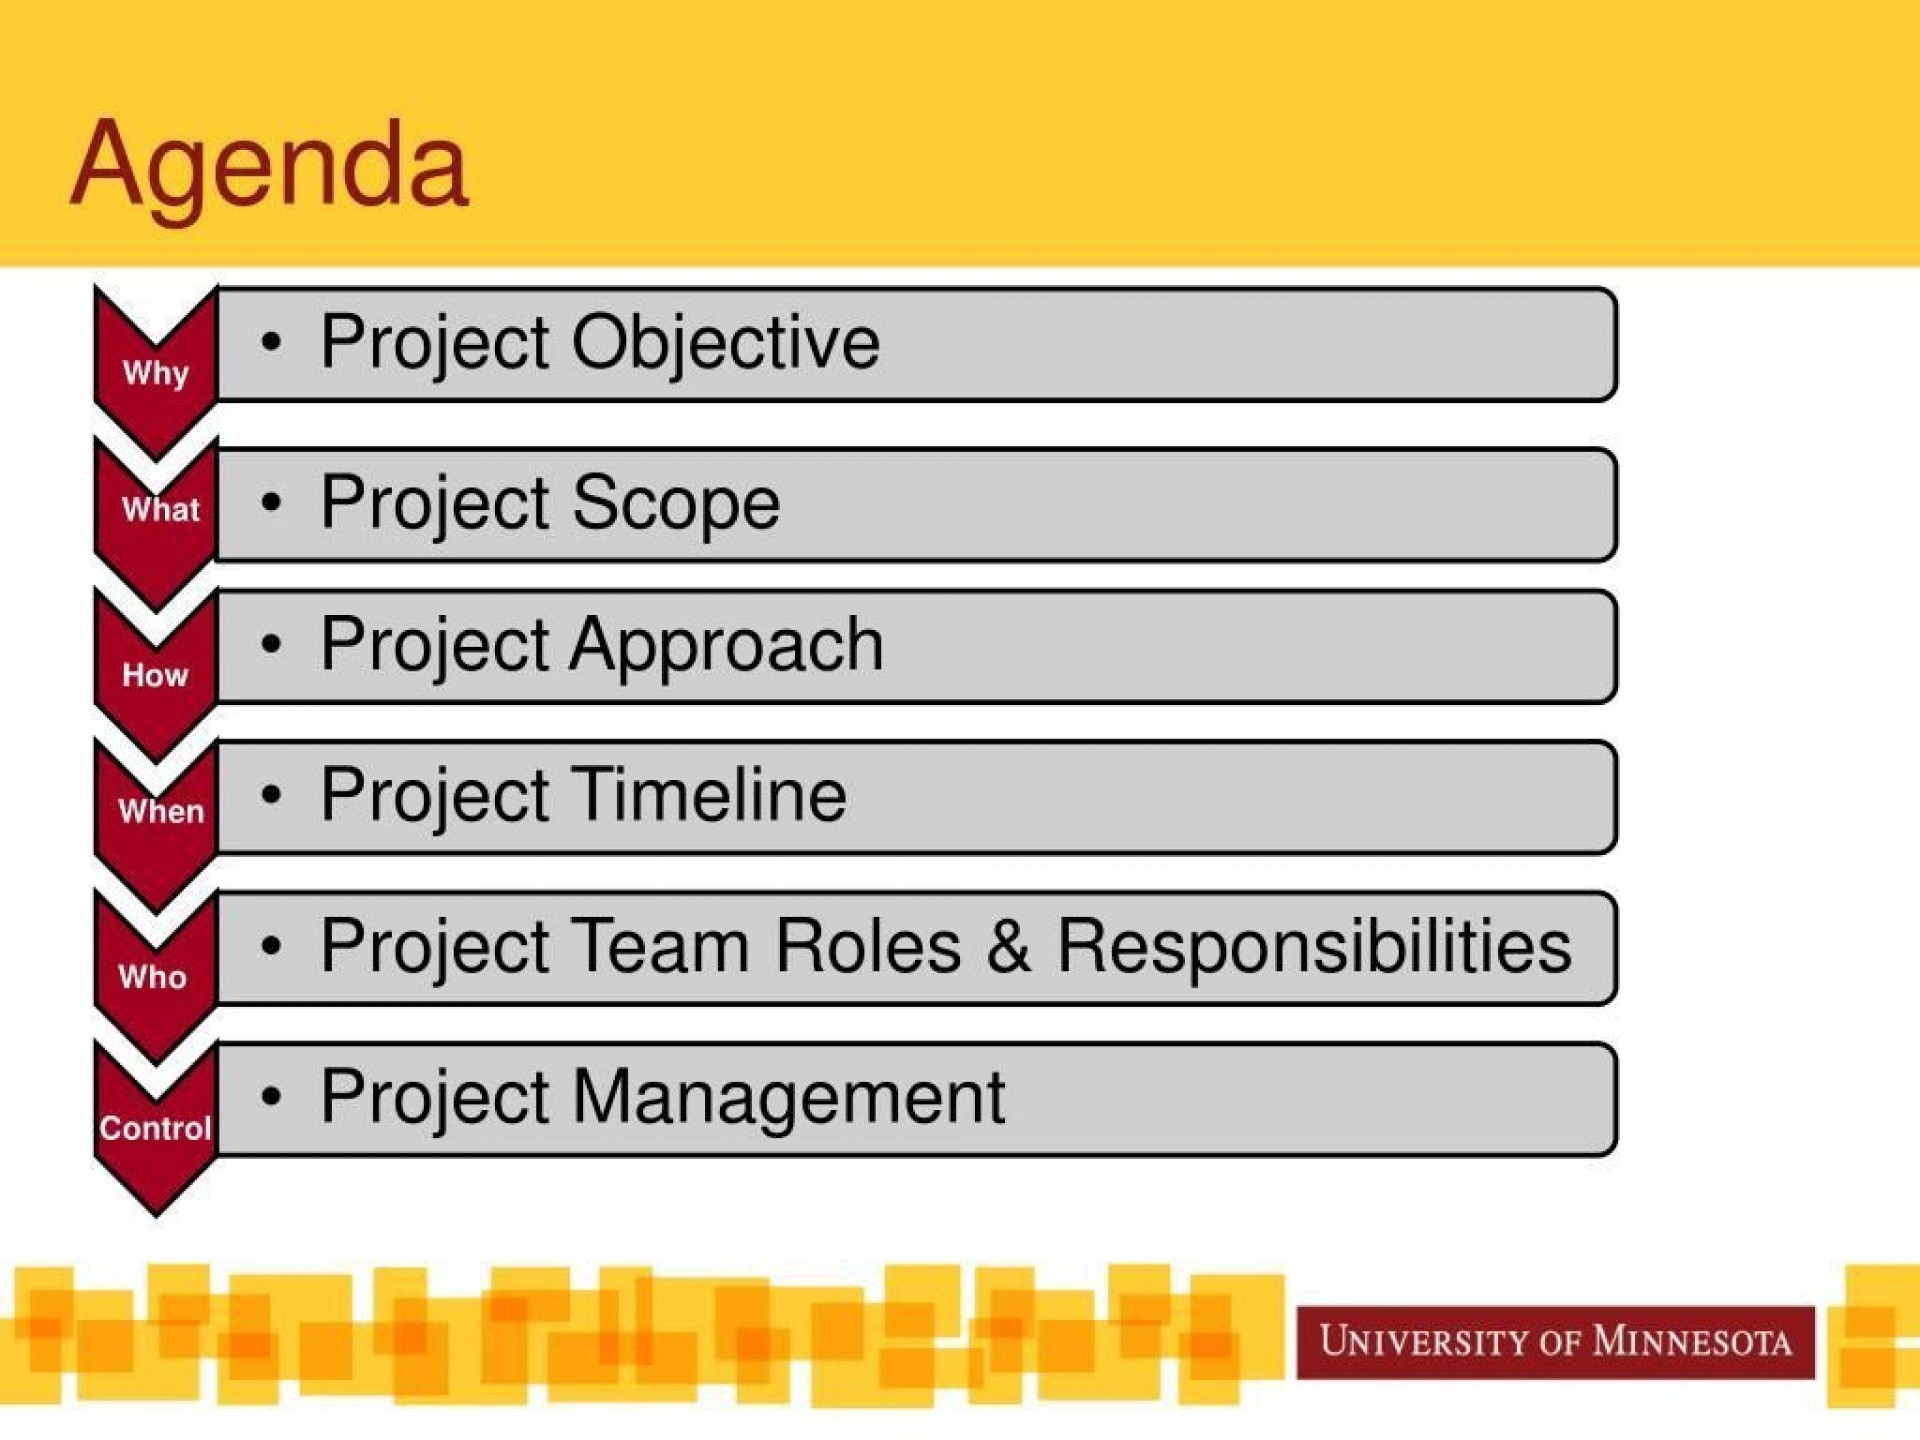 000 Excellent Project Kick Off Template Ppt Picture  Meeting Management Kickoff1920